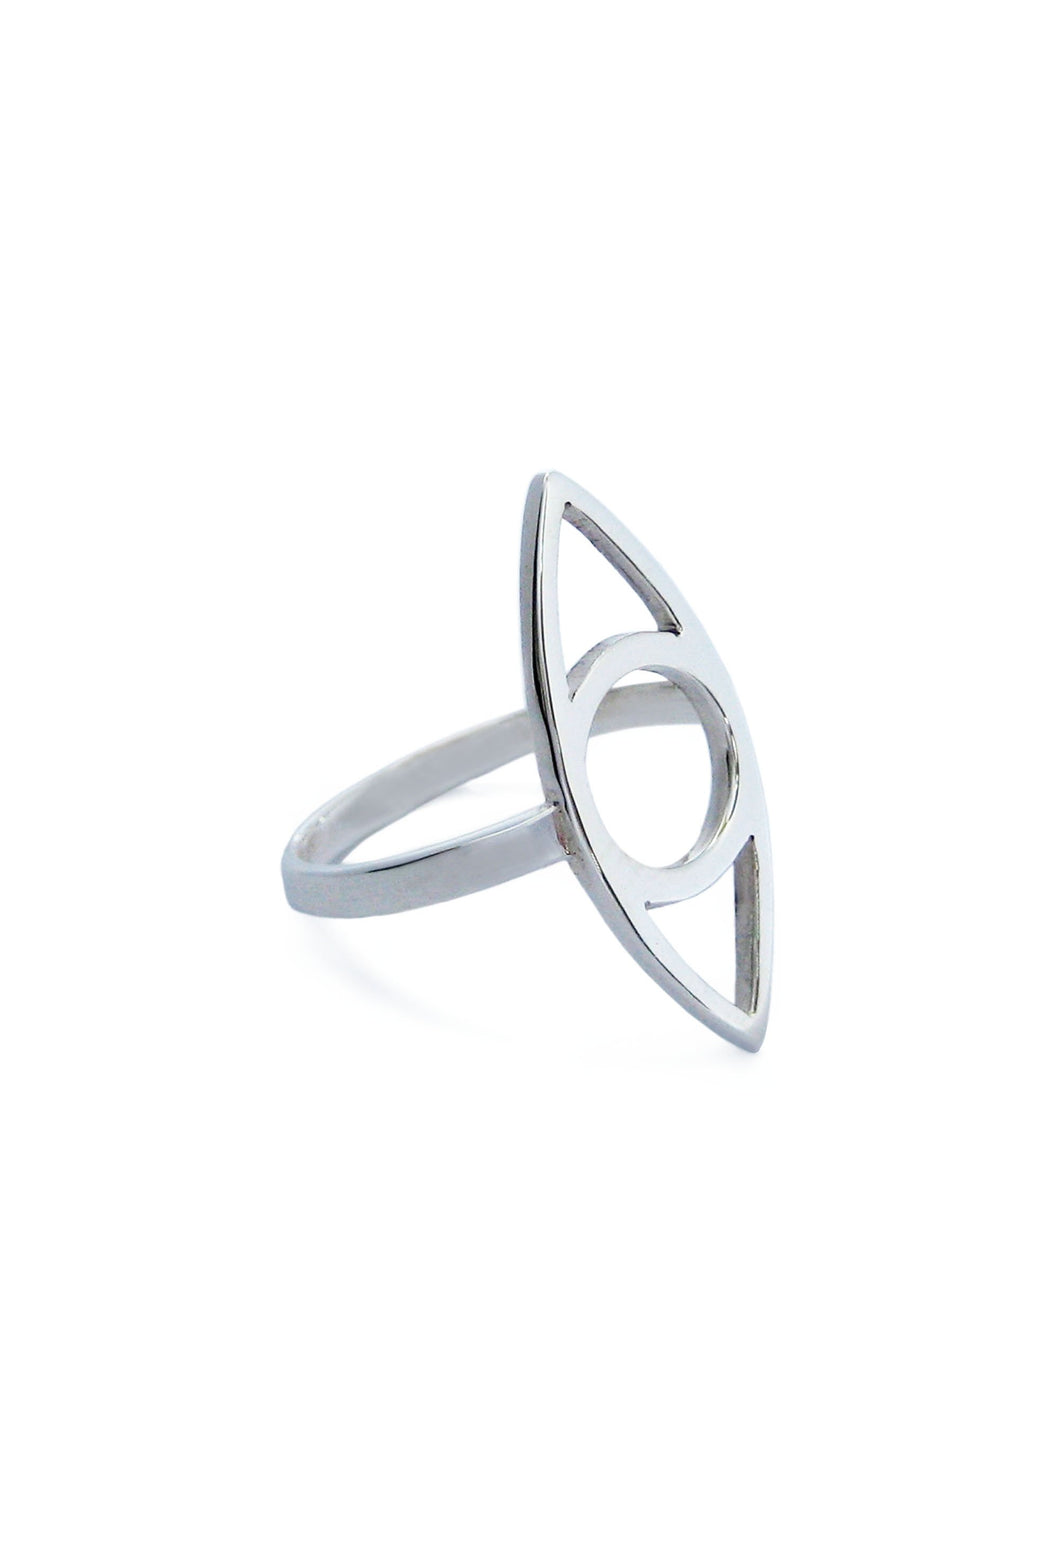 Eye ring handmade in 925 sterling silver